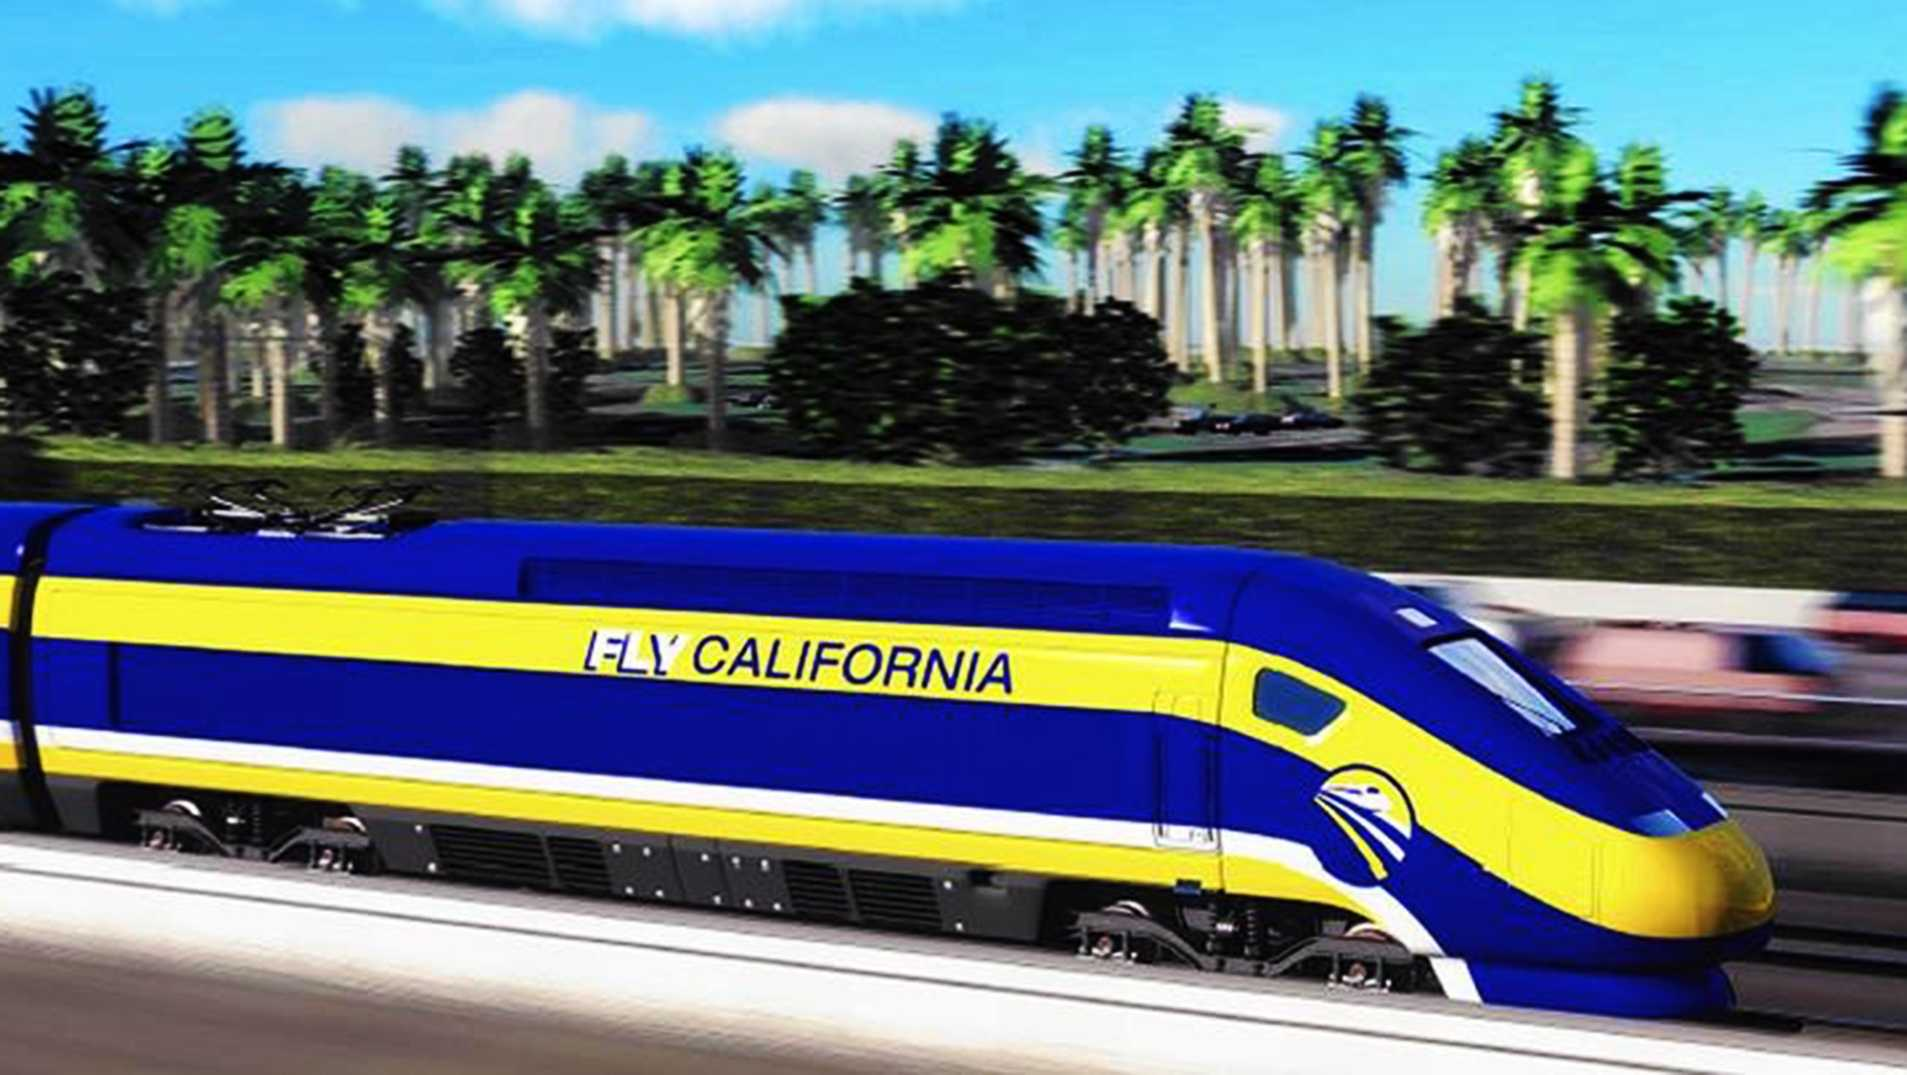 An artist's conception of the planned train.